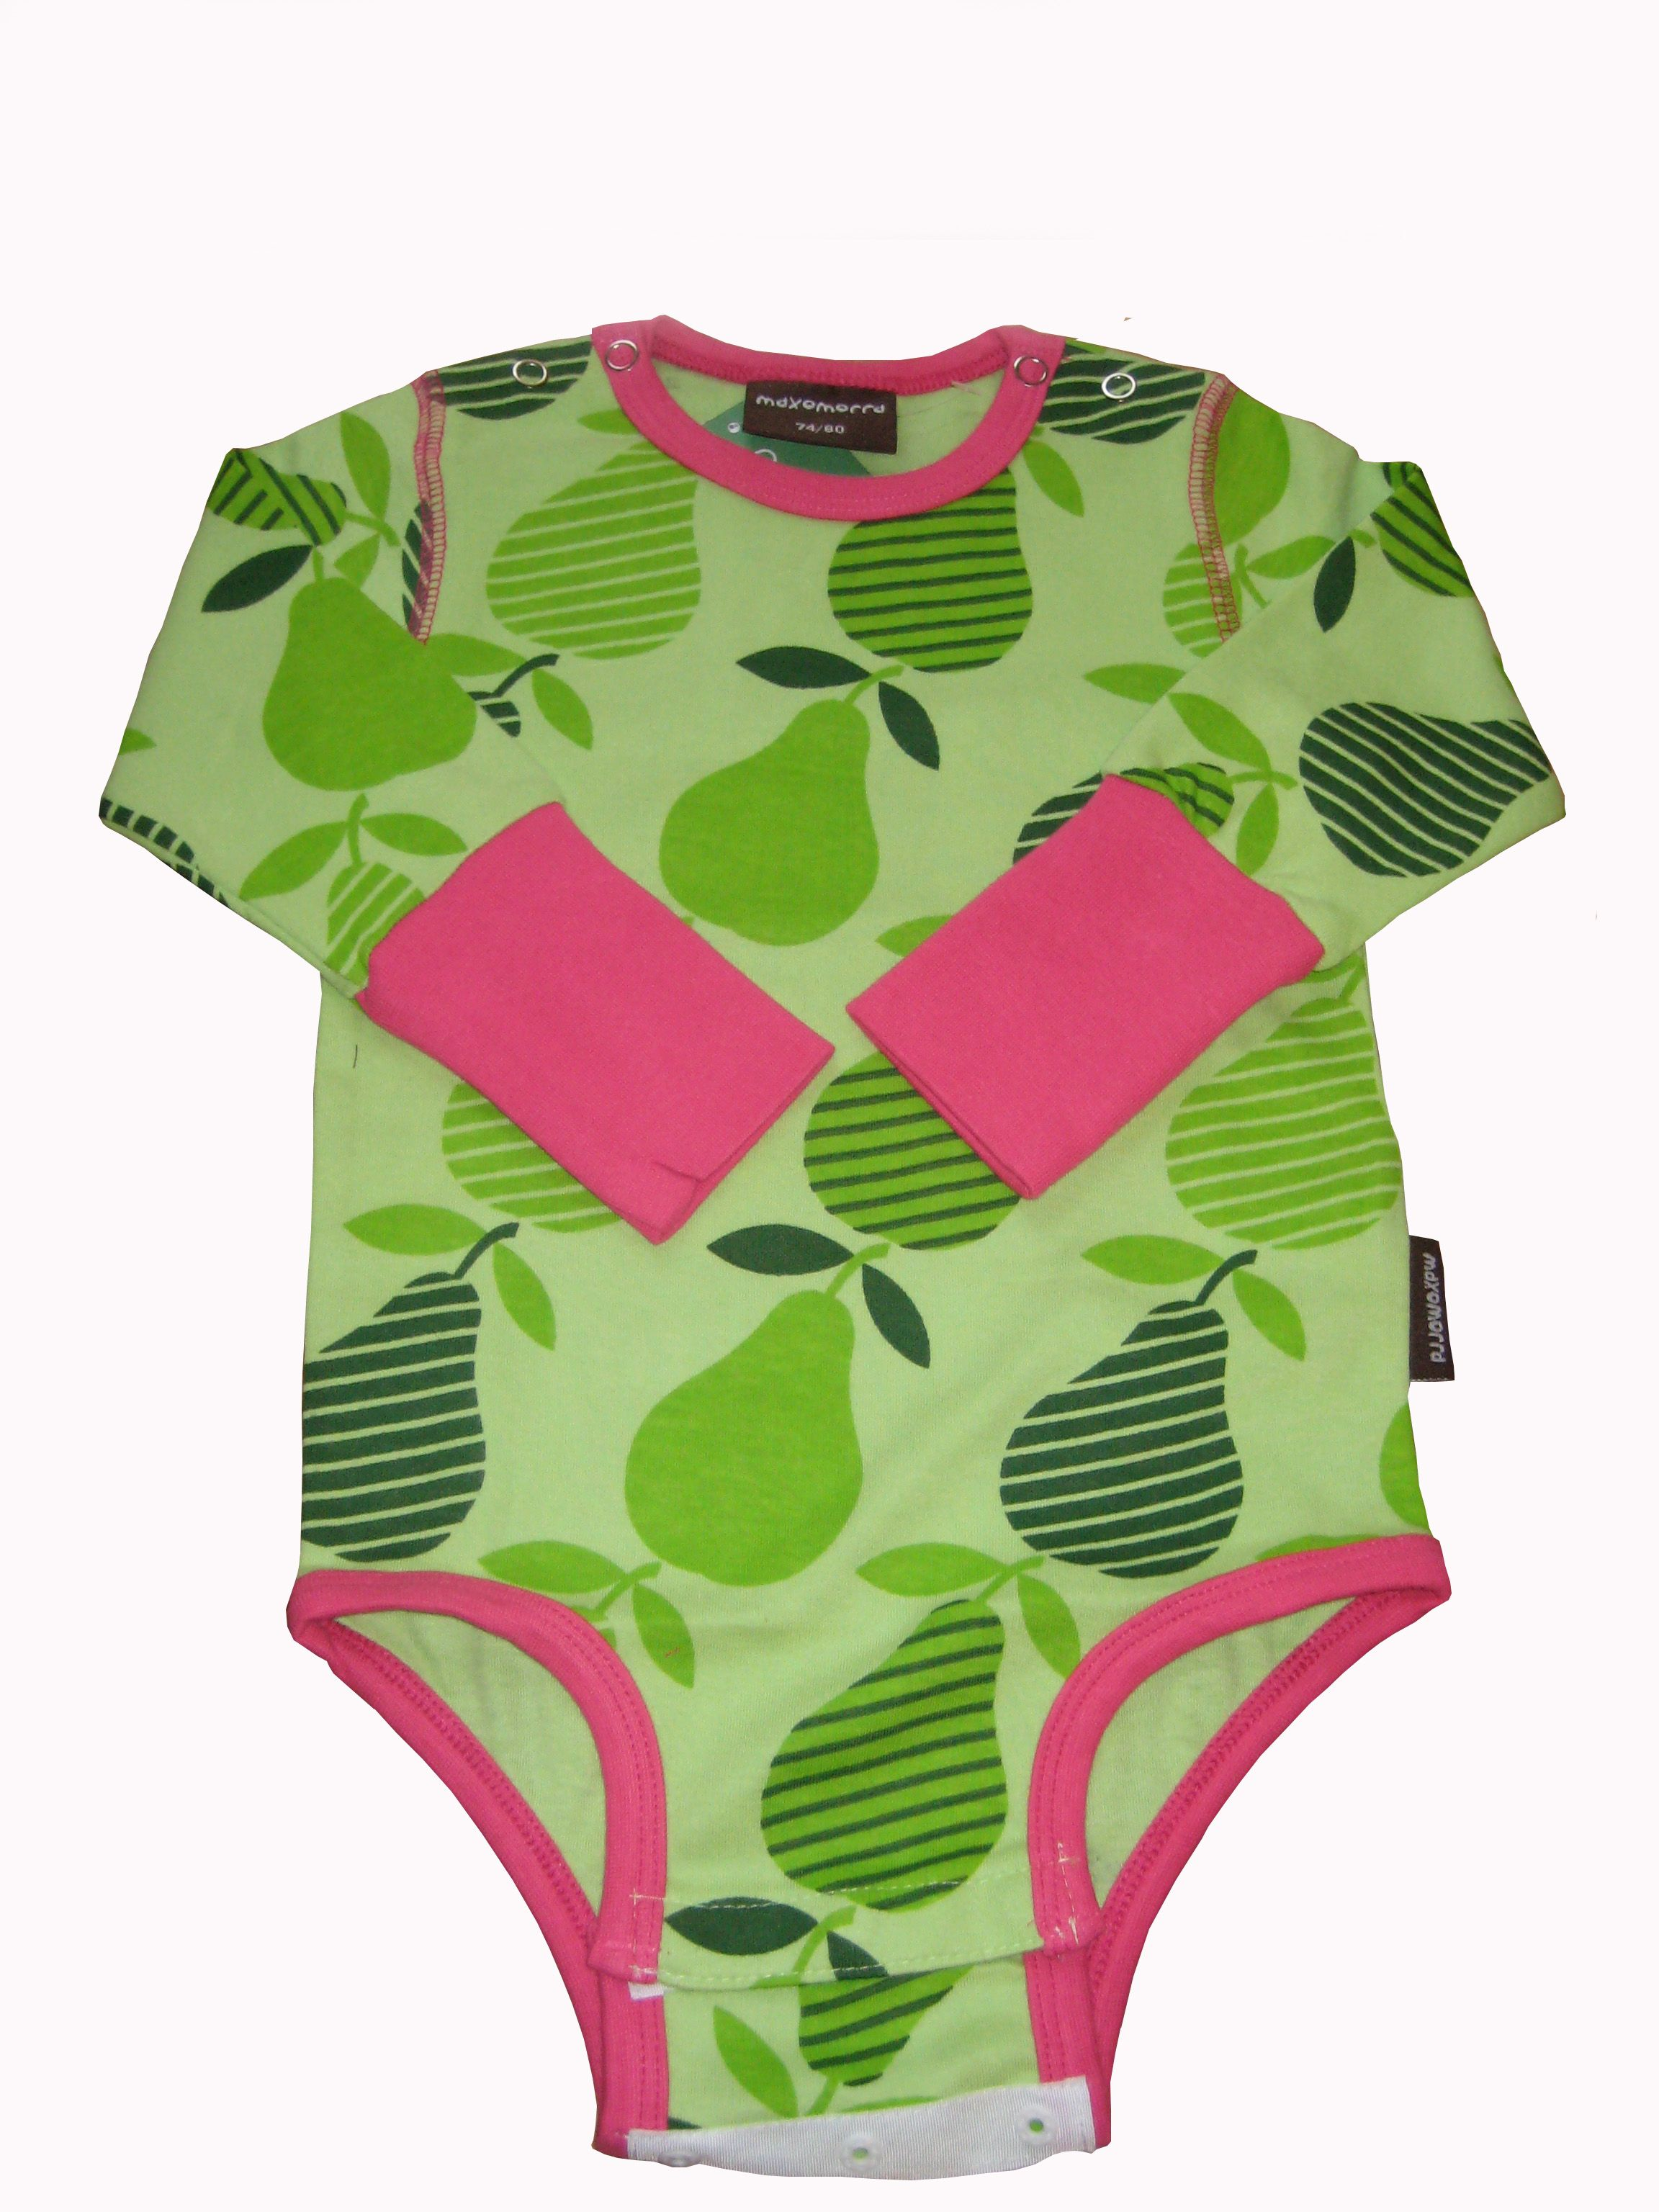 Maxomorra Pears esie Colourful original baby clothes from one of